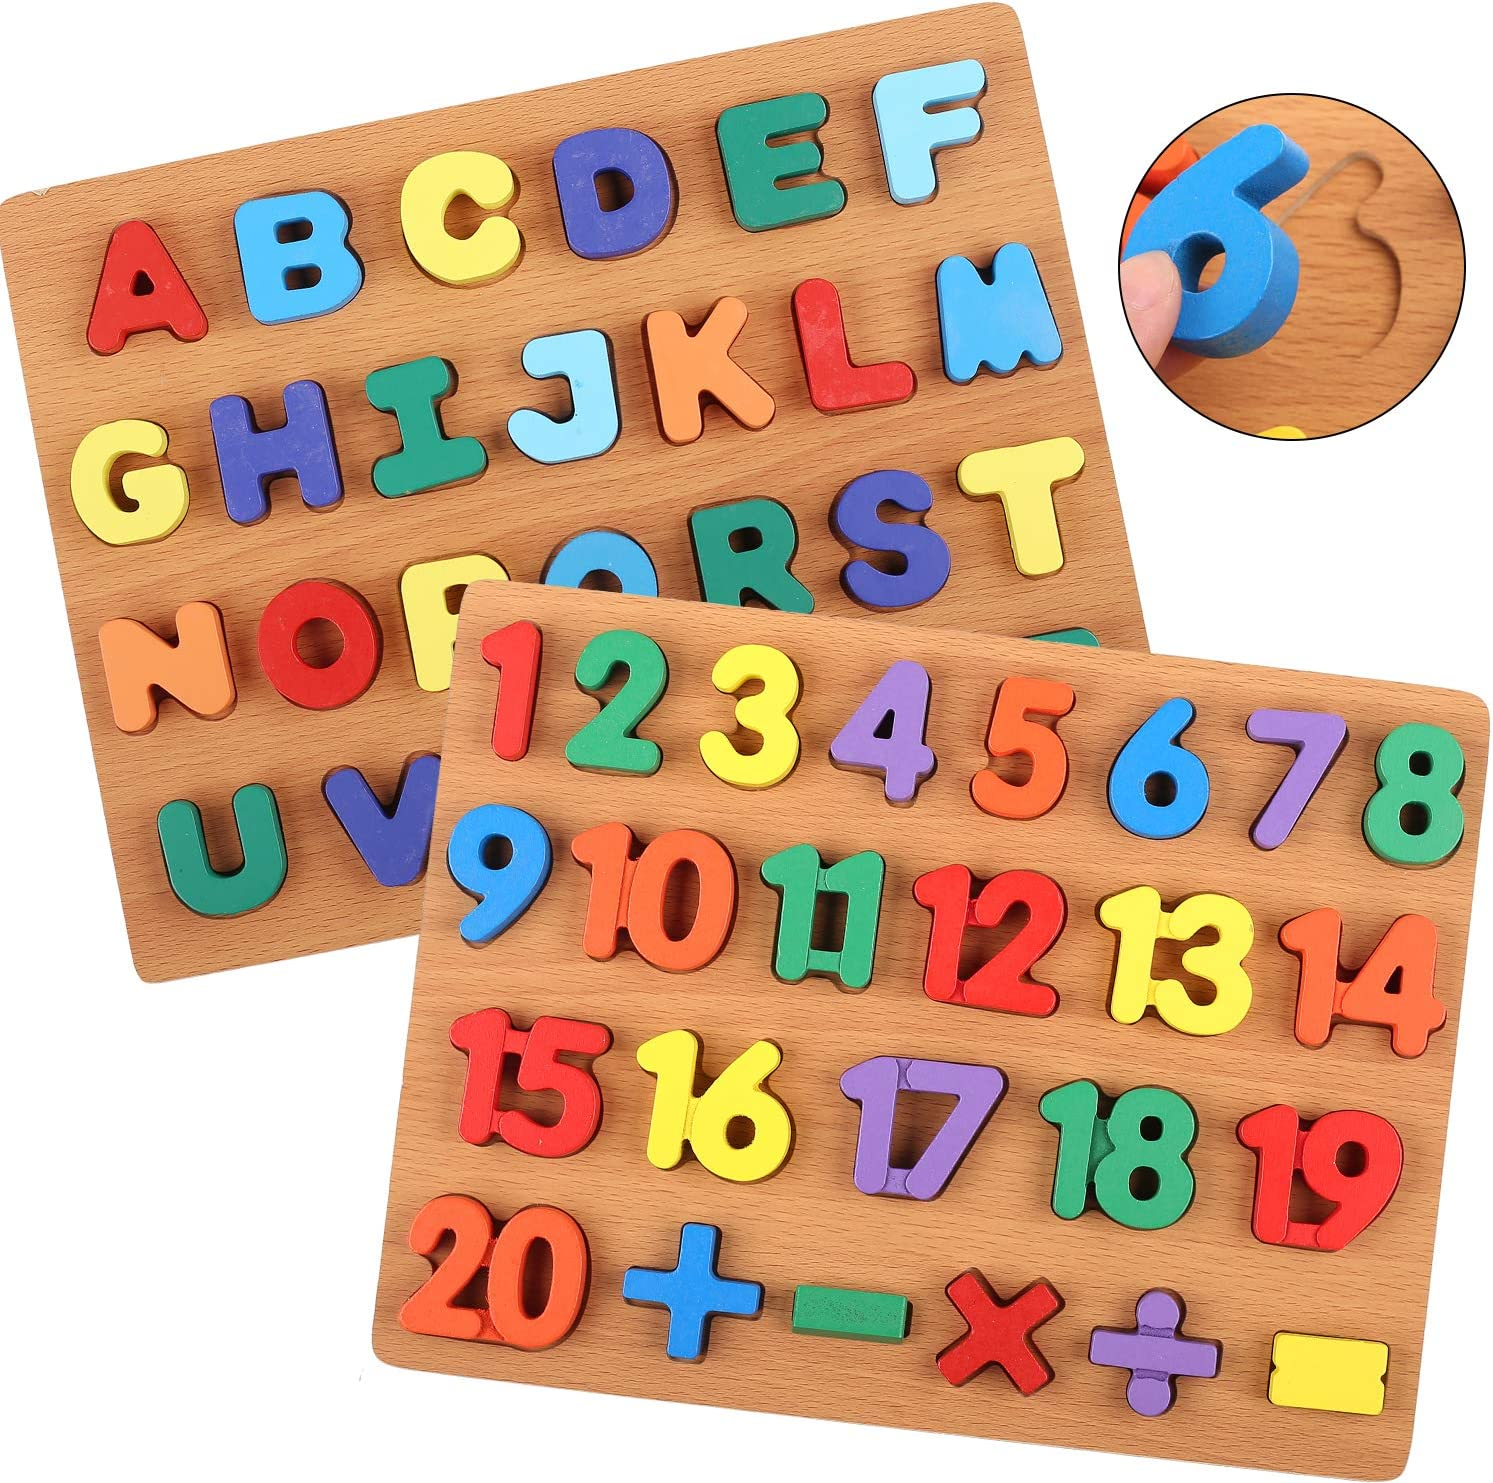 Learning wooden learning cards Josh/&twinkle cheapest on